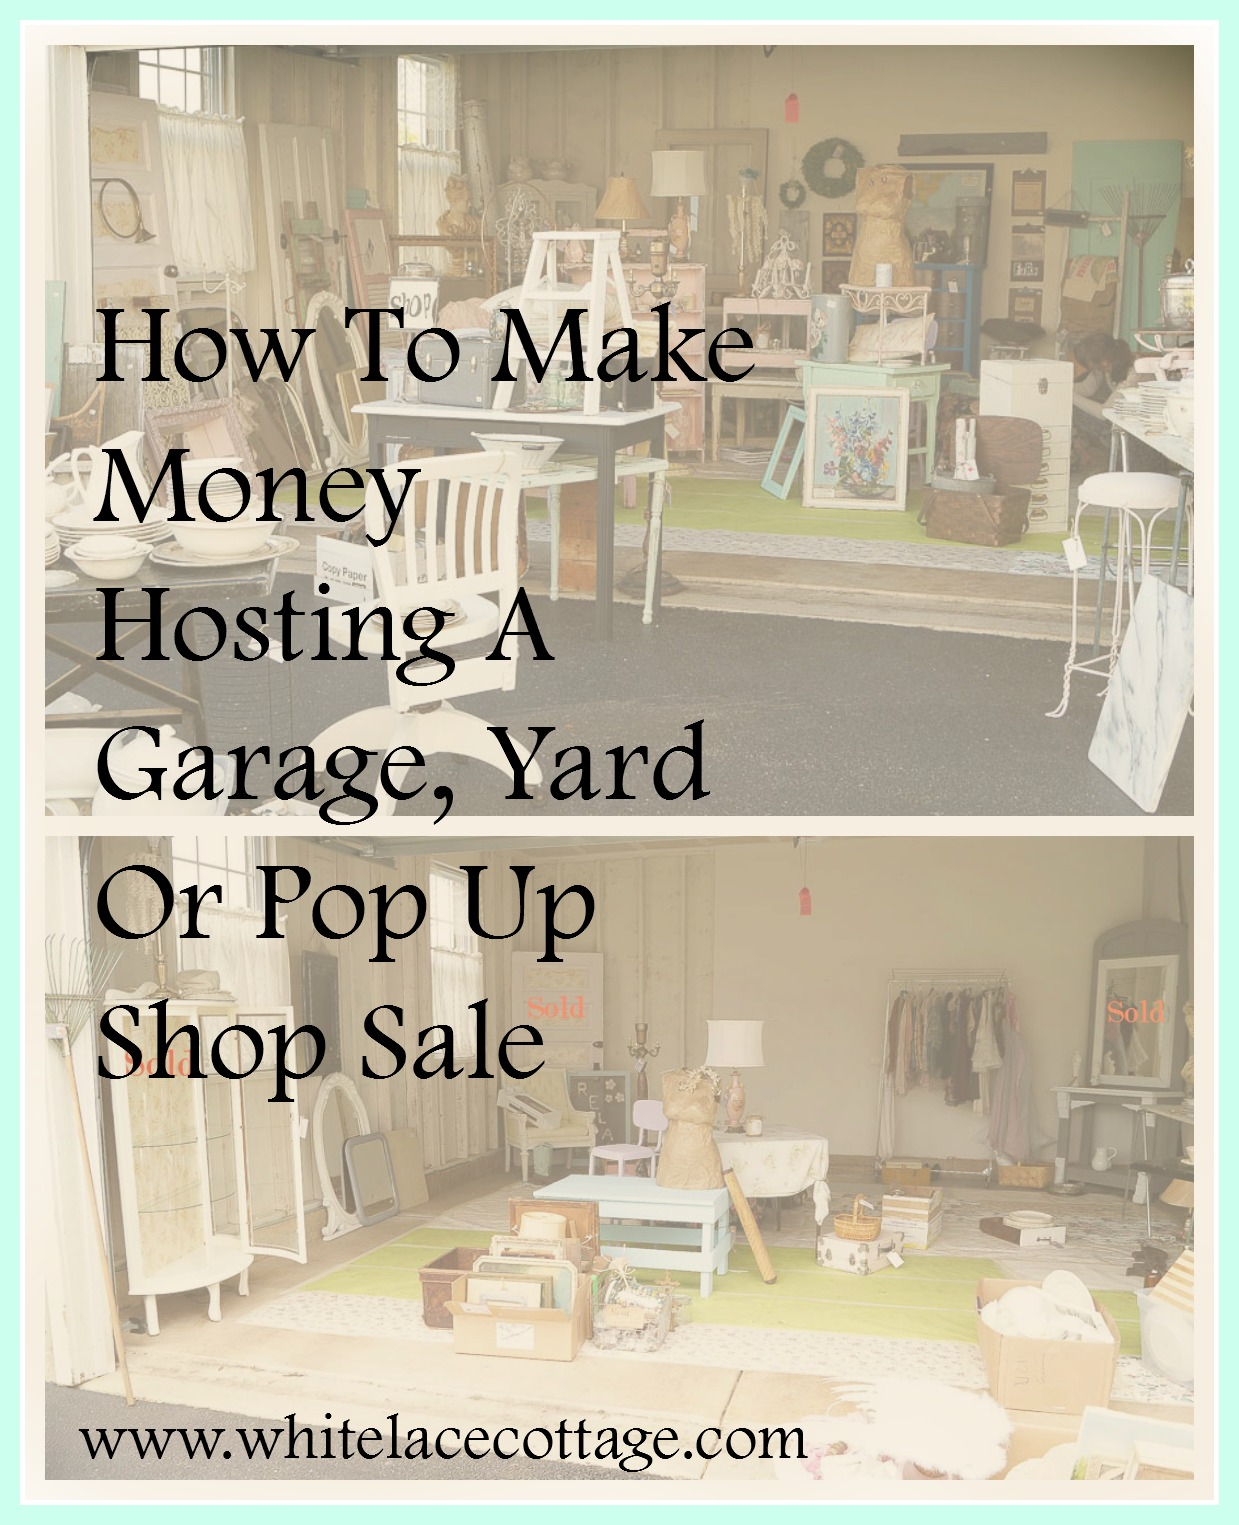 Make money hosting garage sales, it a great way to make extra money. I've hosted many of these over the years. I've learned from each one. I'm sharing tips on how to have a successful sale.